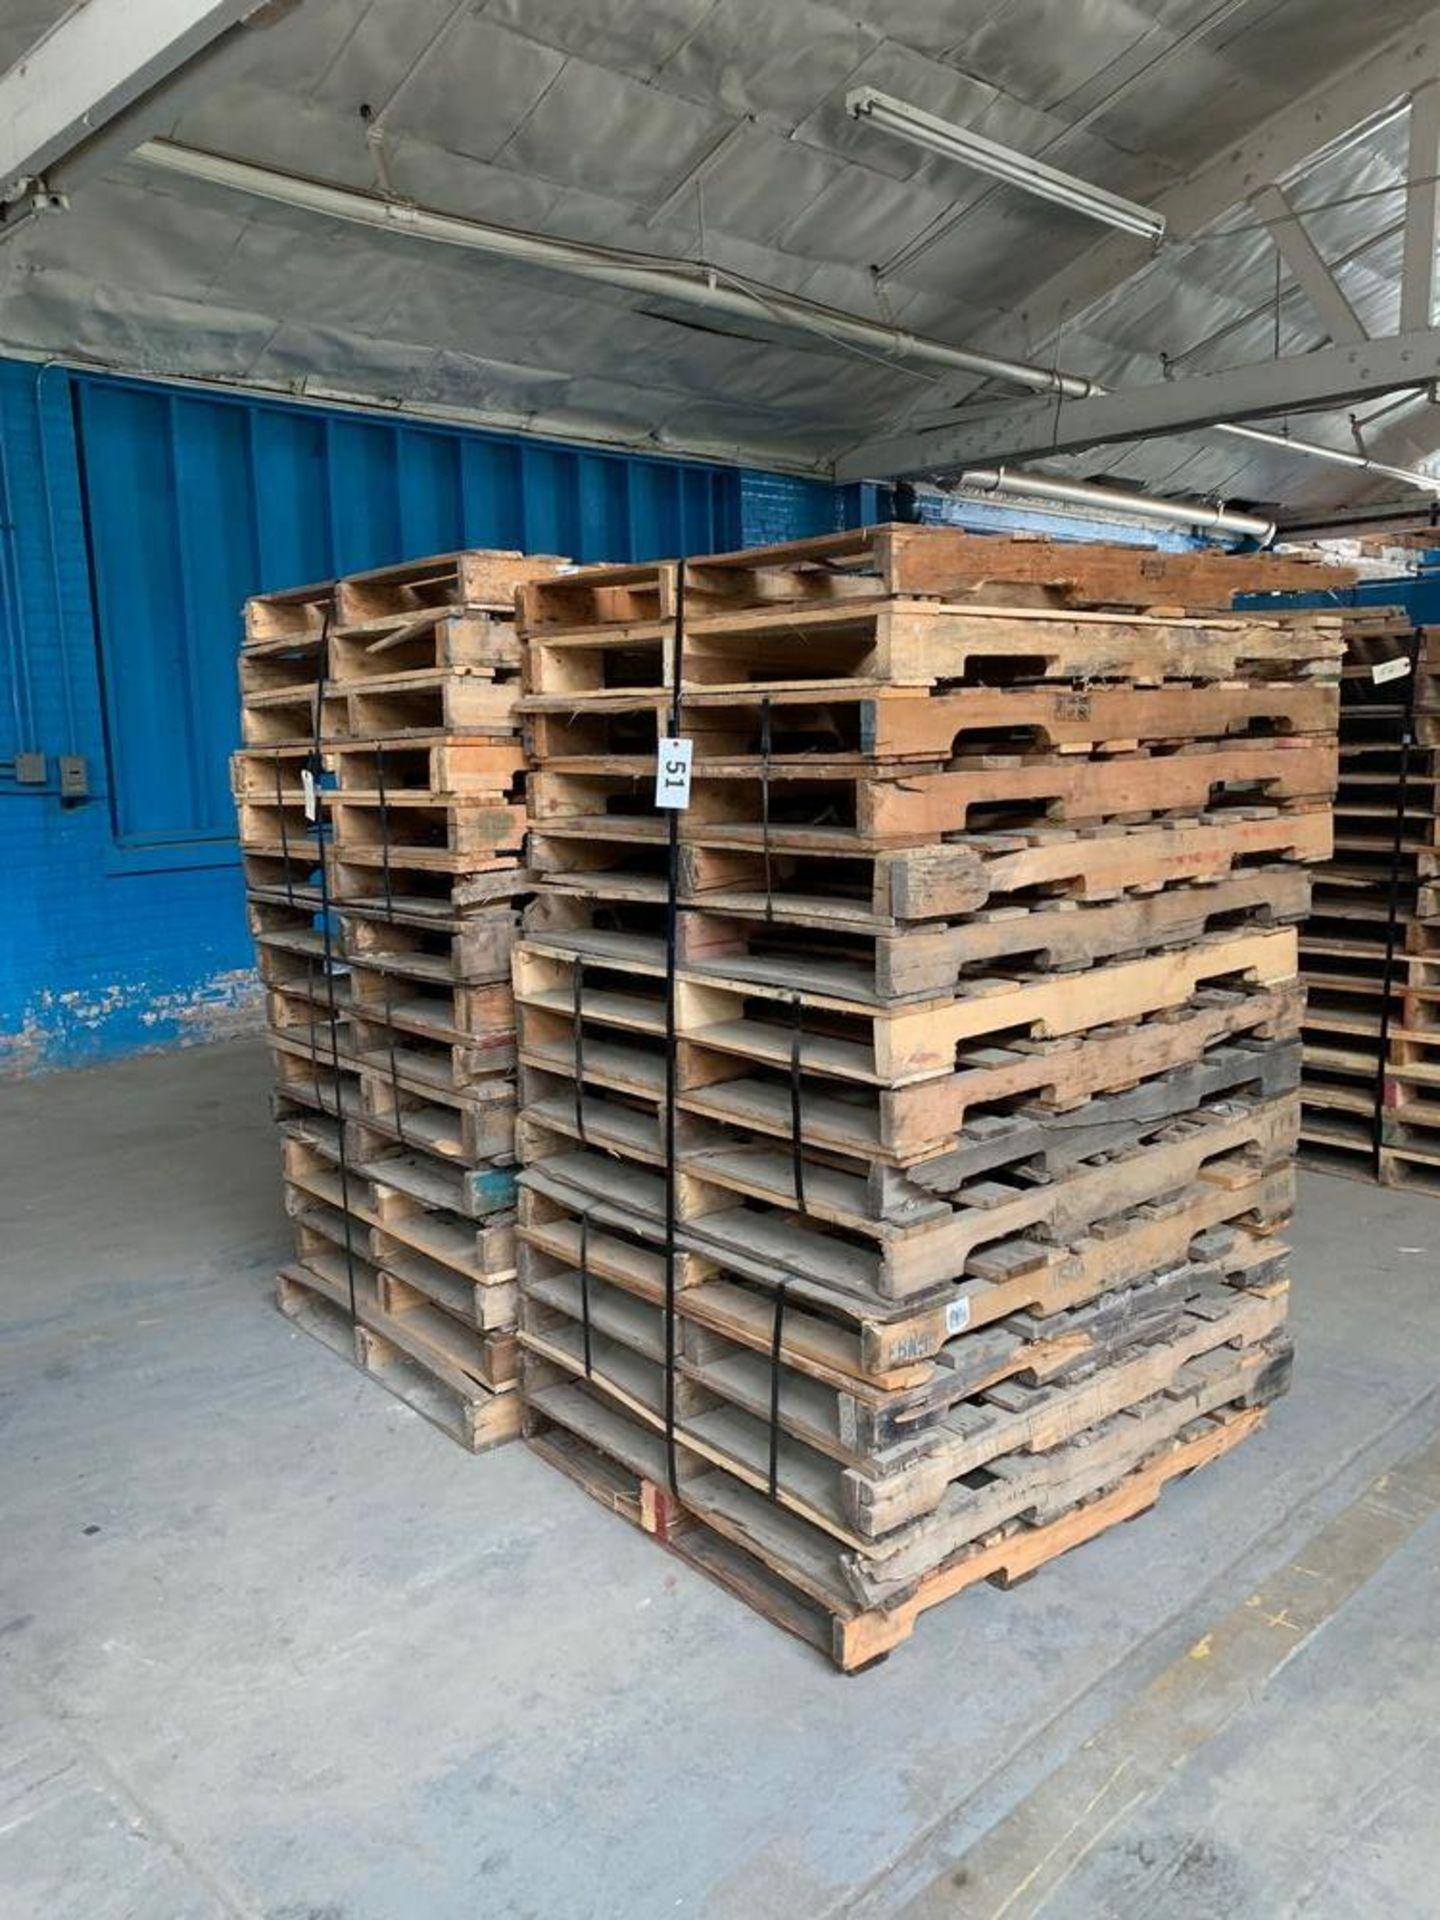 Lot 51 - Lot of Skids (2 stacks)